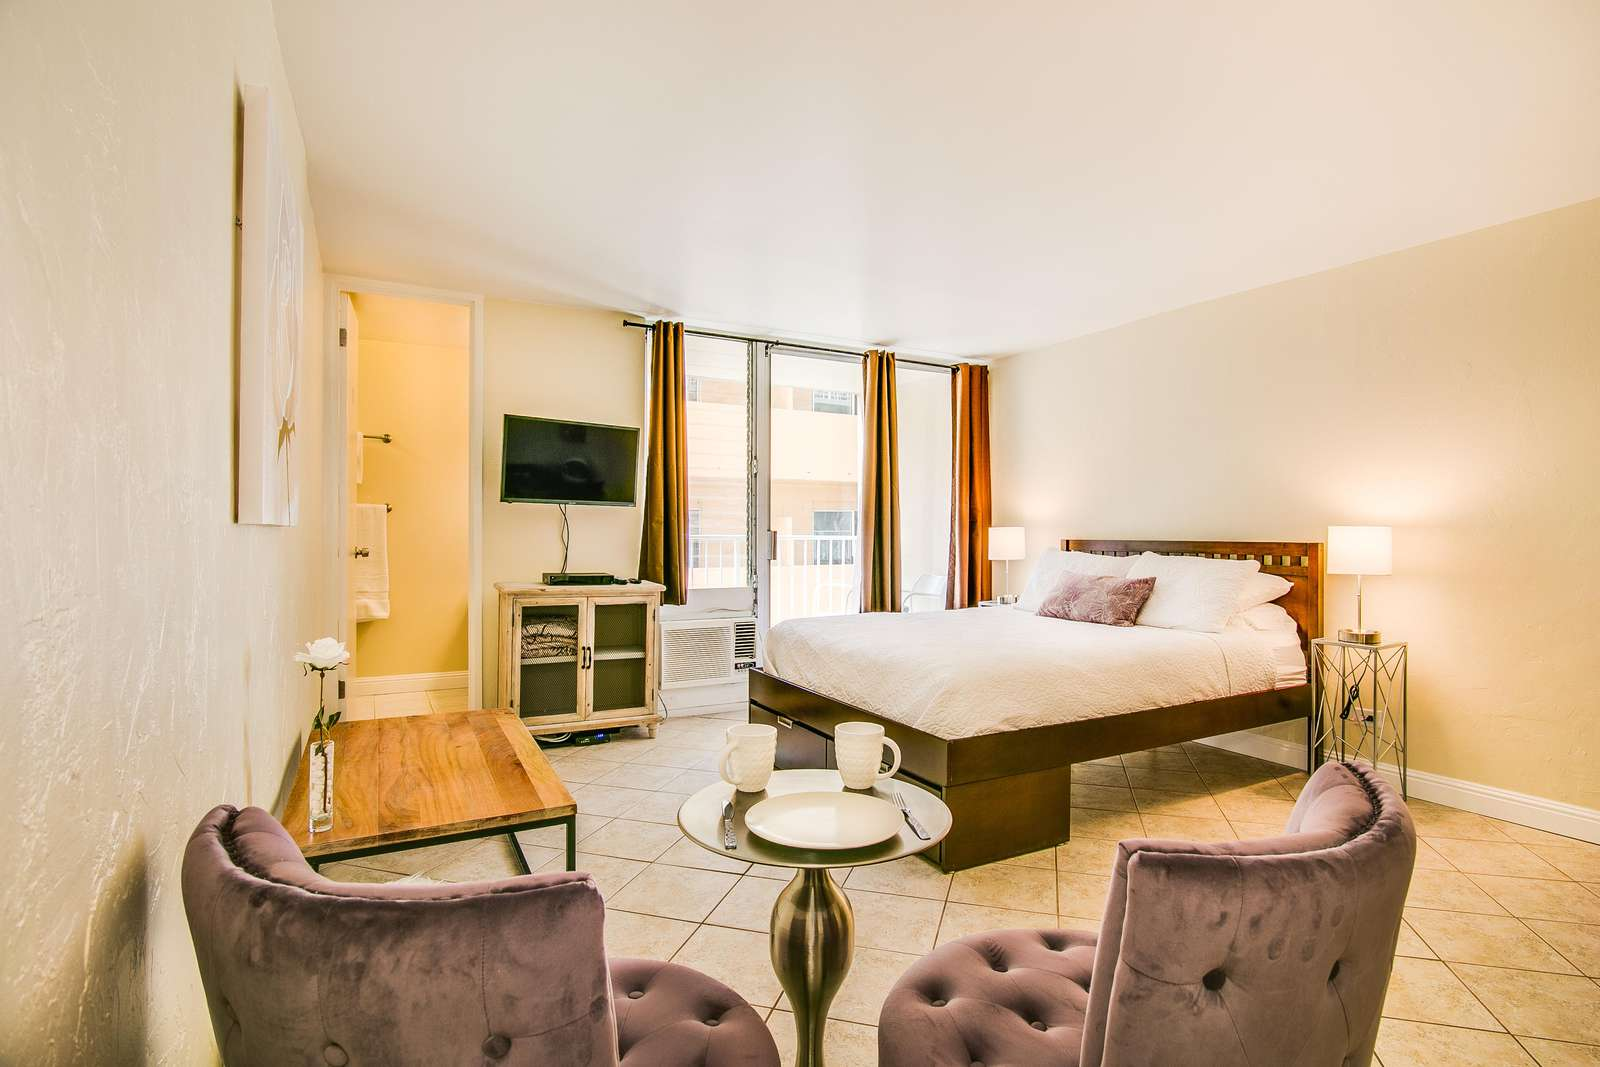 You'll love the spacious feel and how super close we are to Waikiki Beach